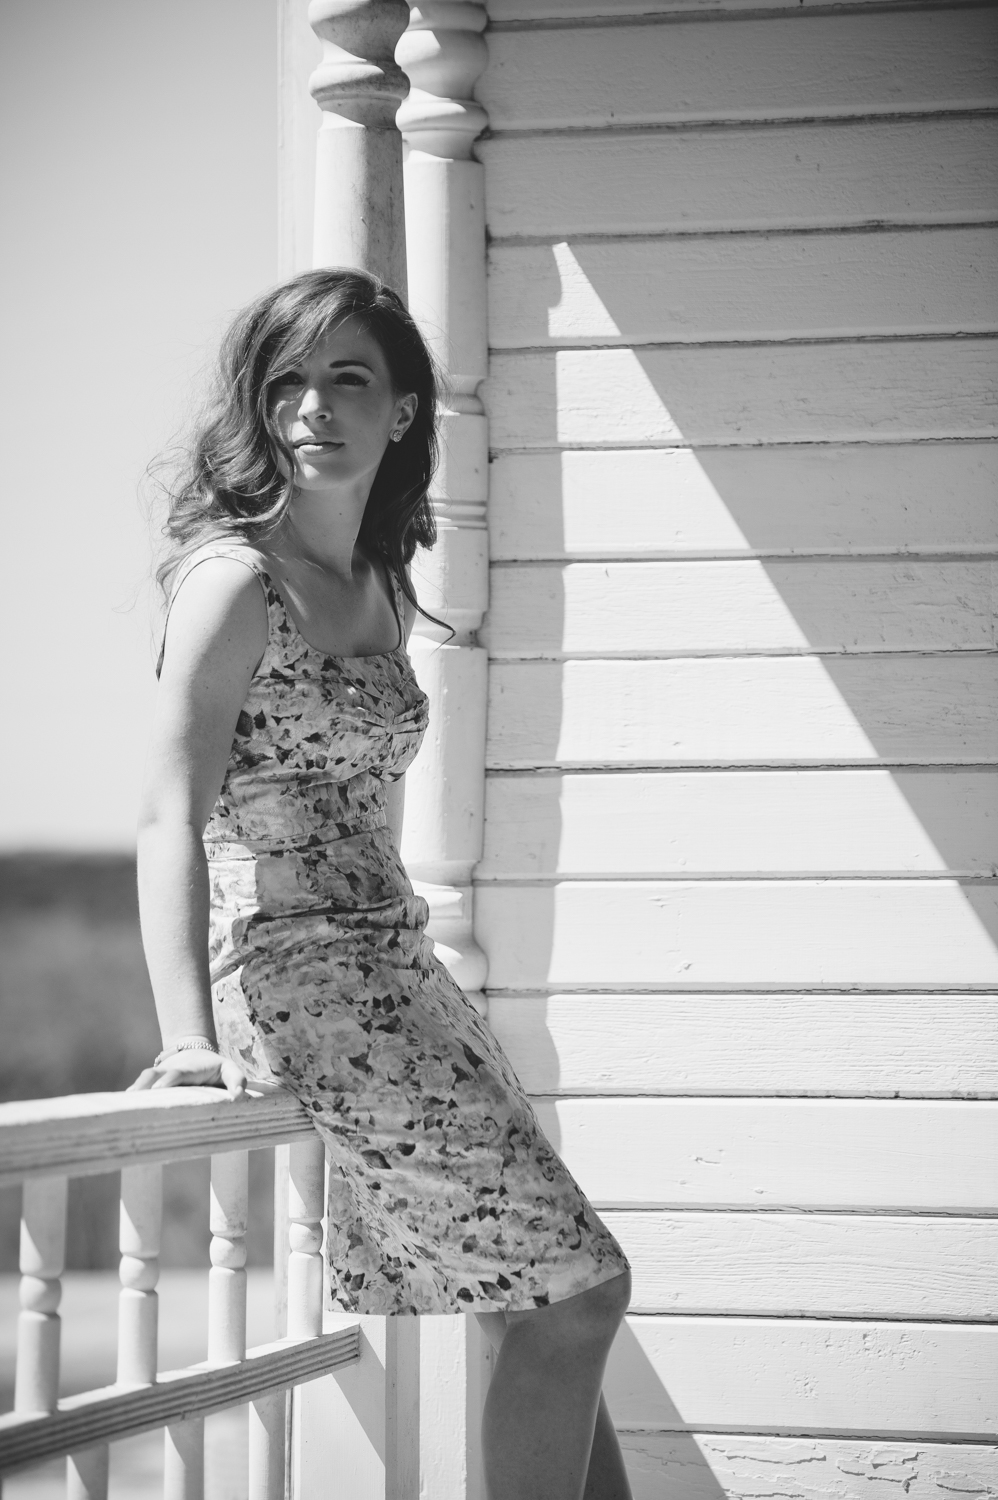 BARR_MANSION_ENGAGEMENT_SHOOT_BY_MATTHEW_MOORE_PHOTOGRAPHY_00024-2.jpg